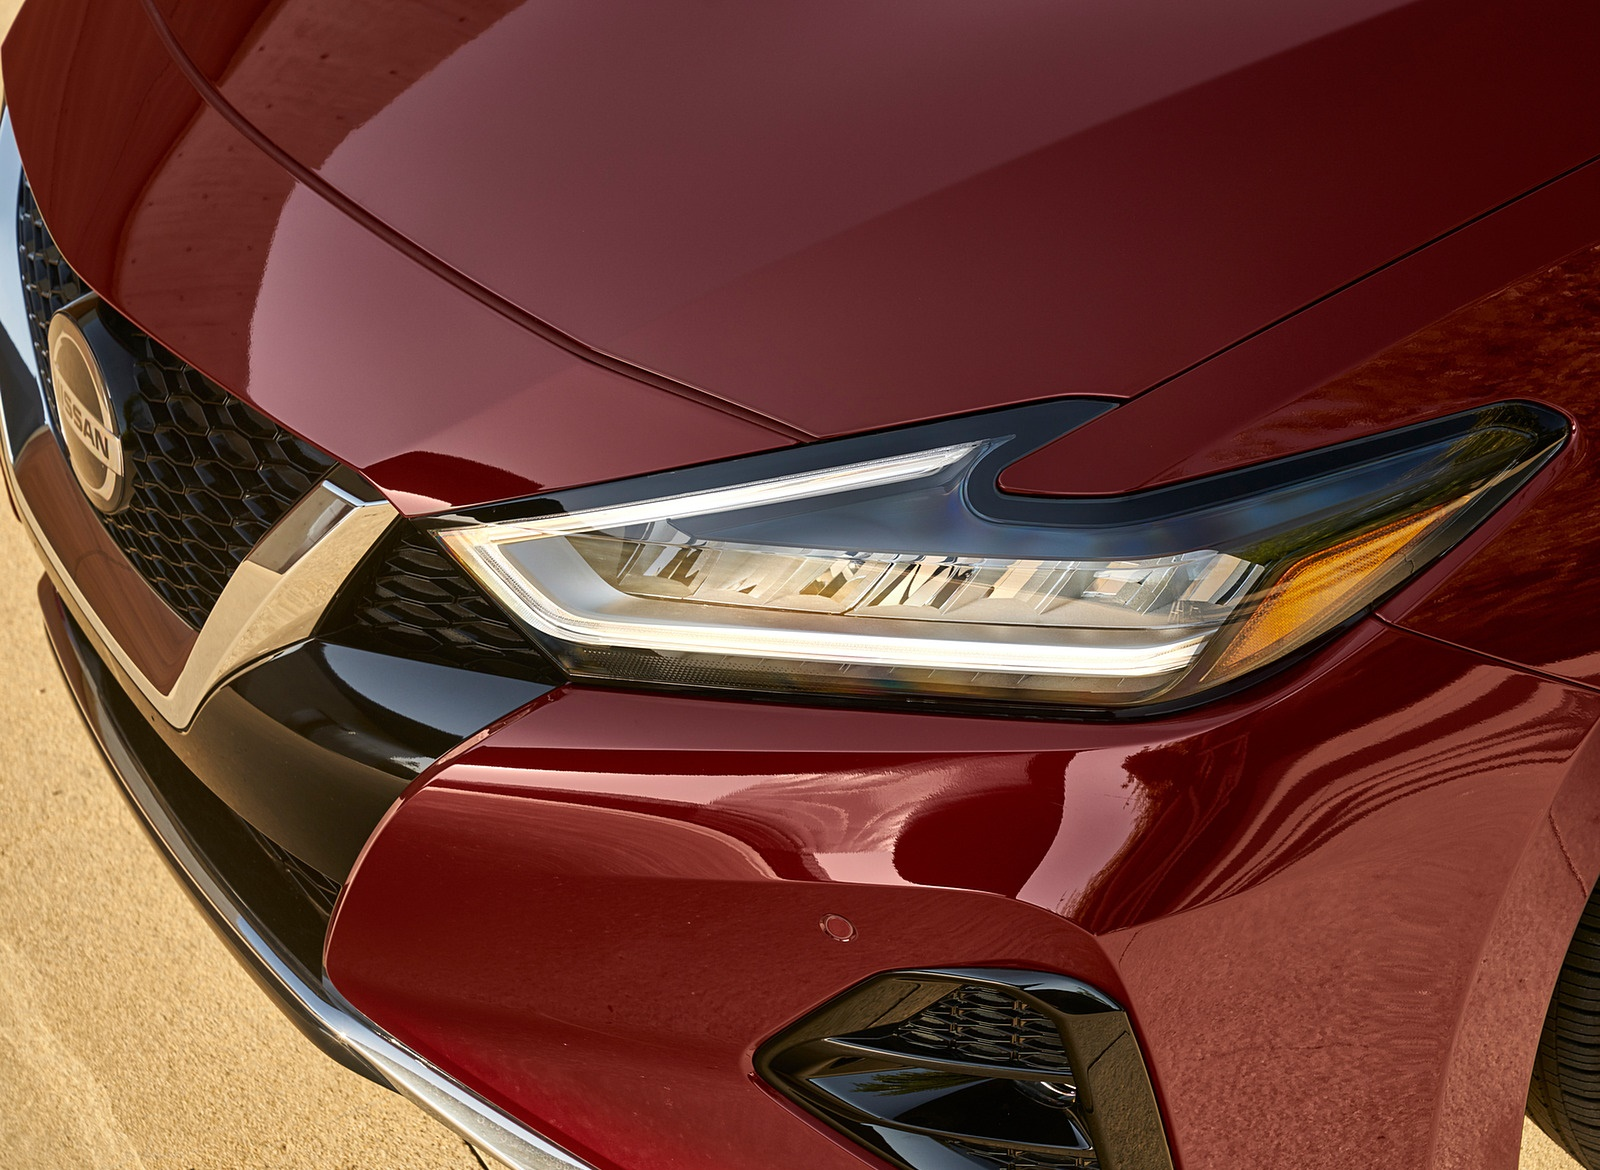 2019 Nissan Maxima Headlight Wallpapers (10)